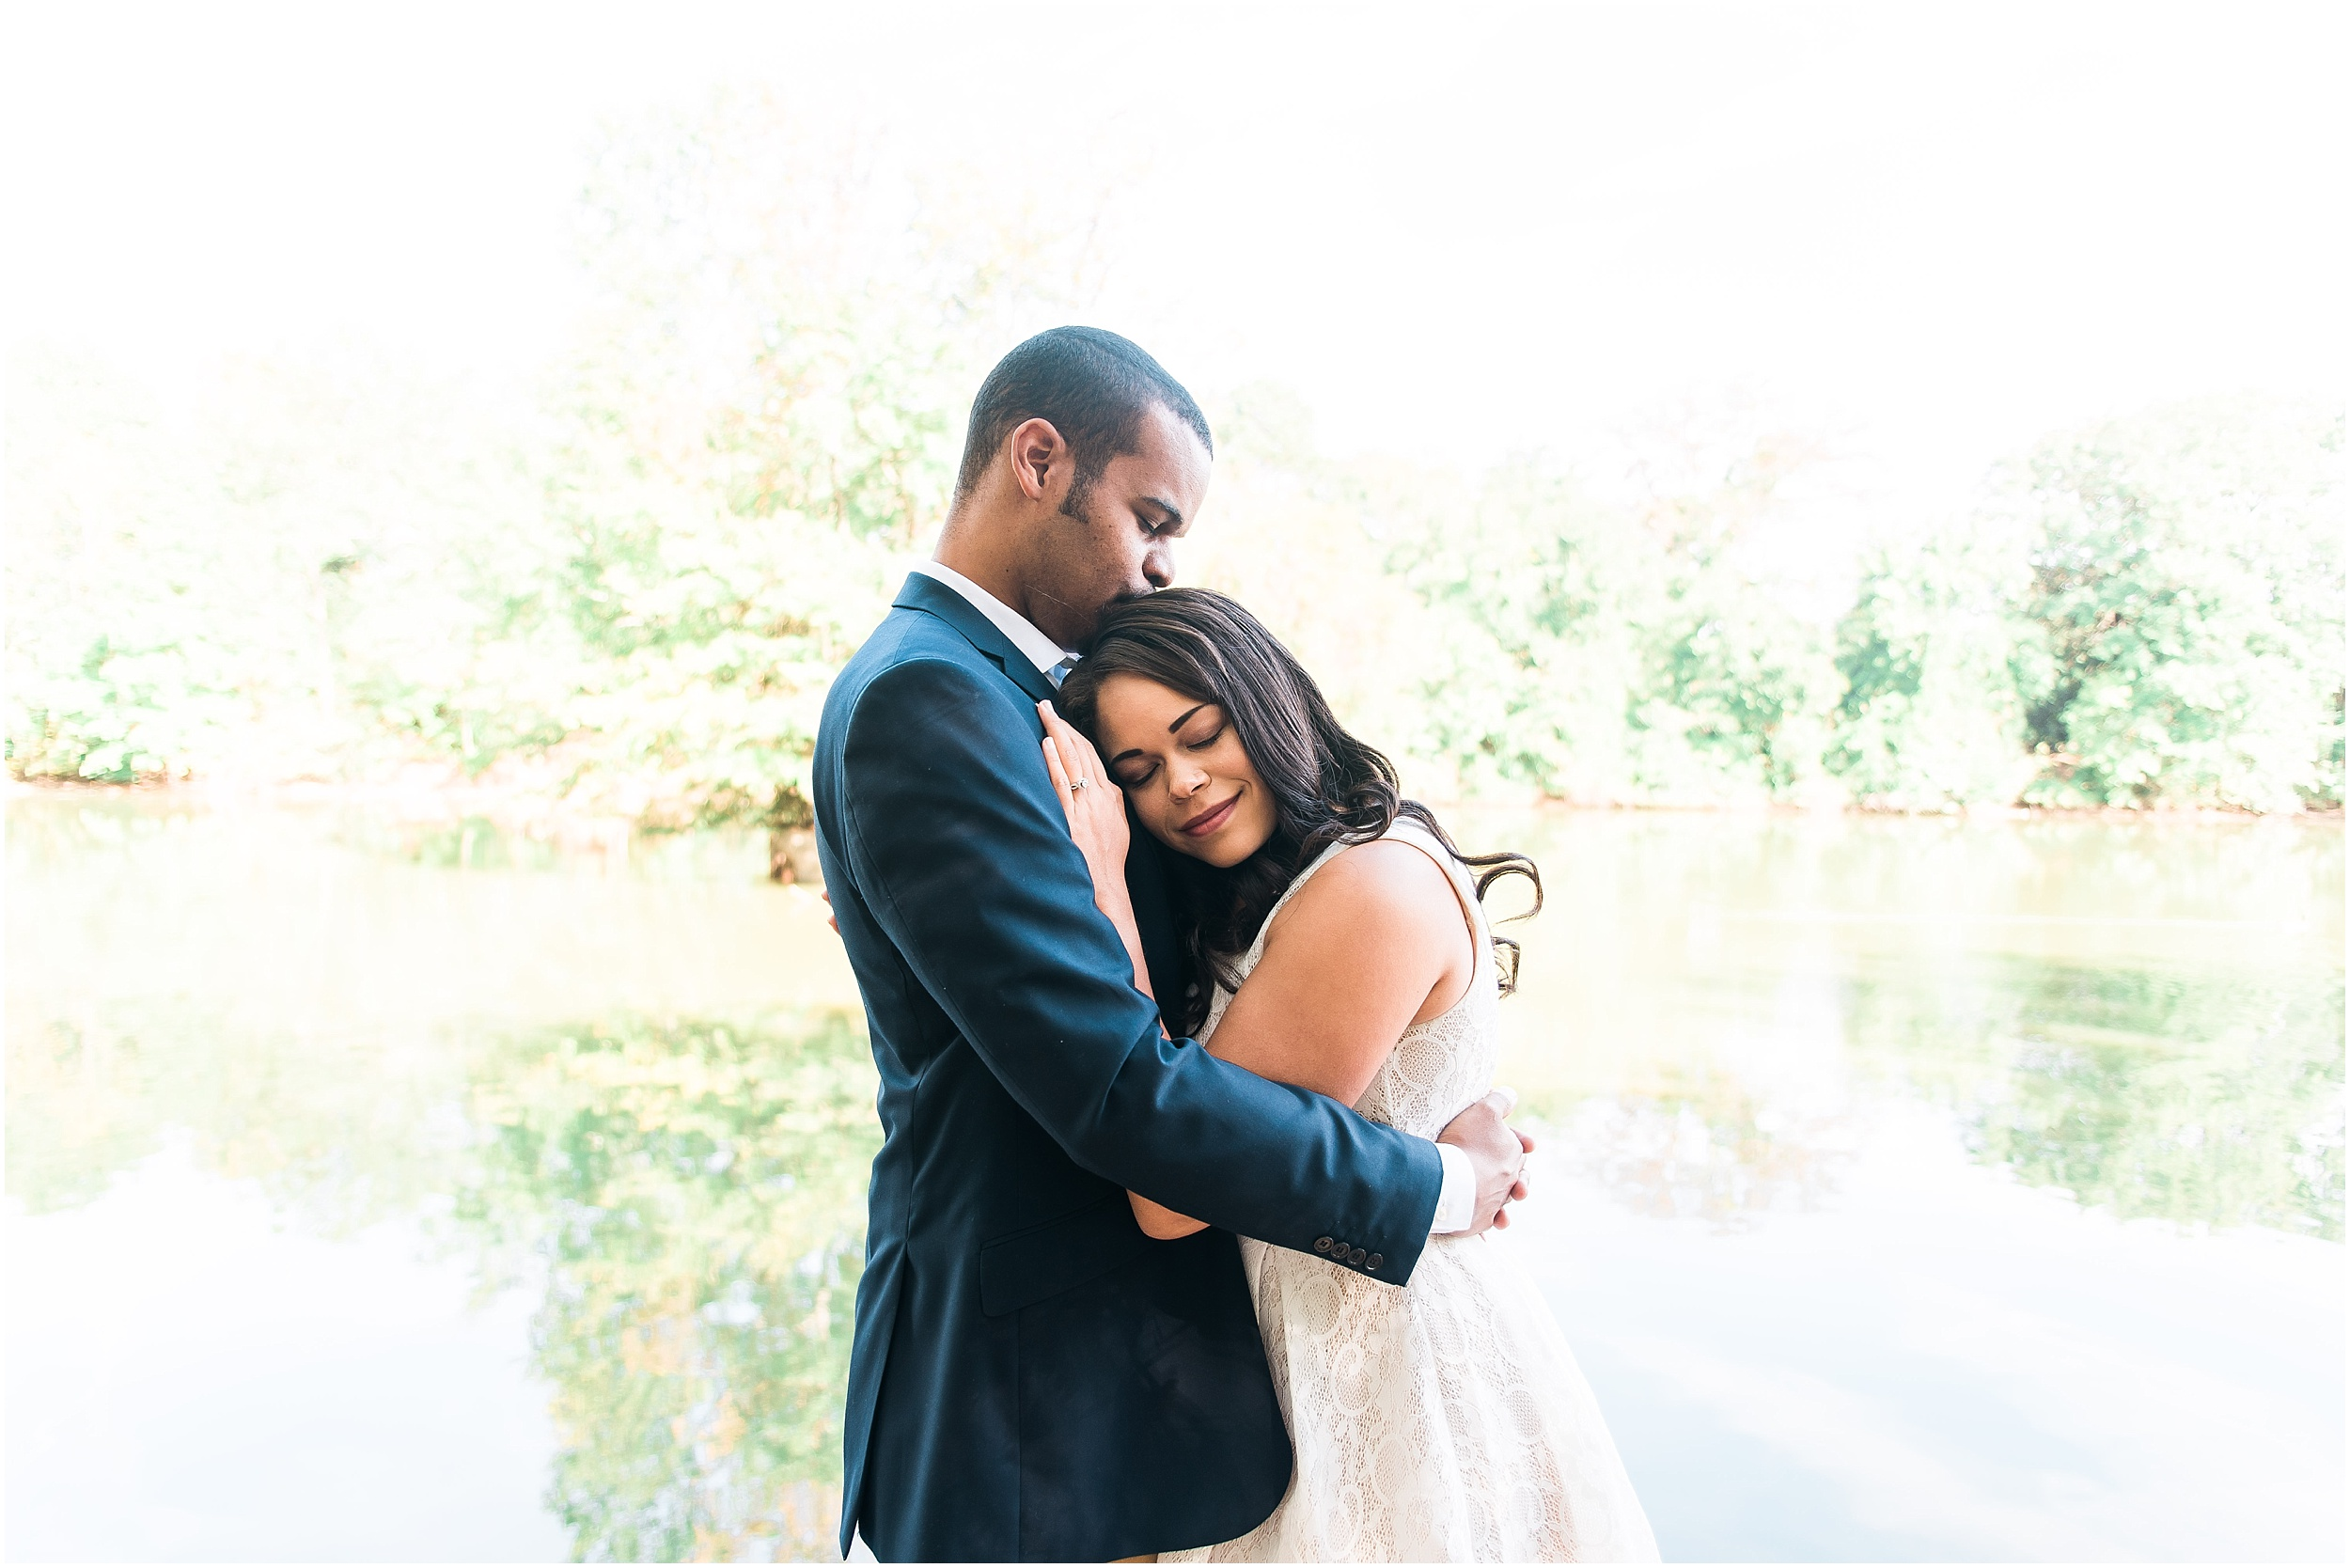 Tallahassee Florida Wedding, Matt and Lindsey Engagement Session at Piedmont Park, Atlanta Georgia_0006.jpg